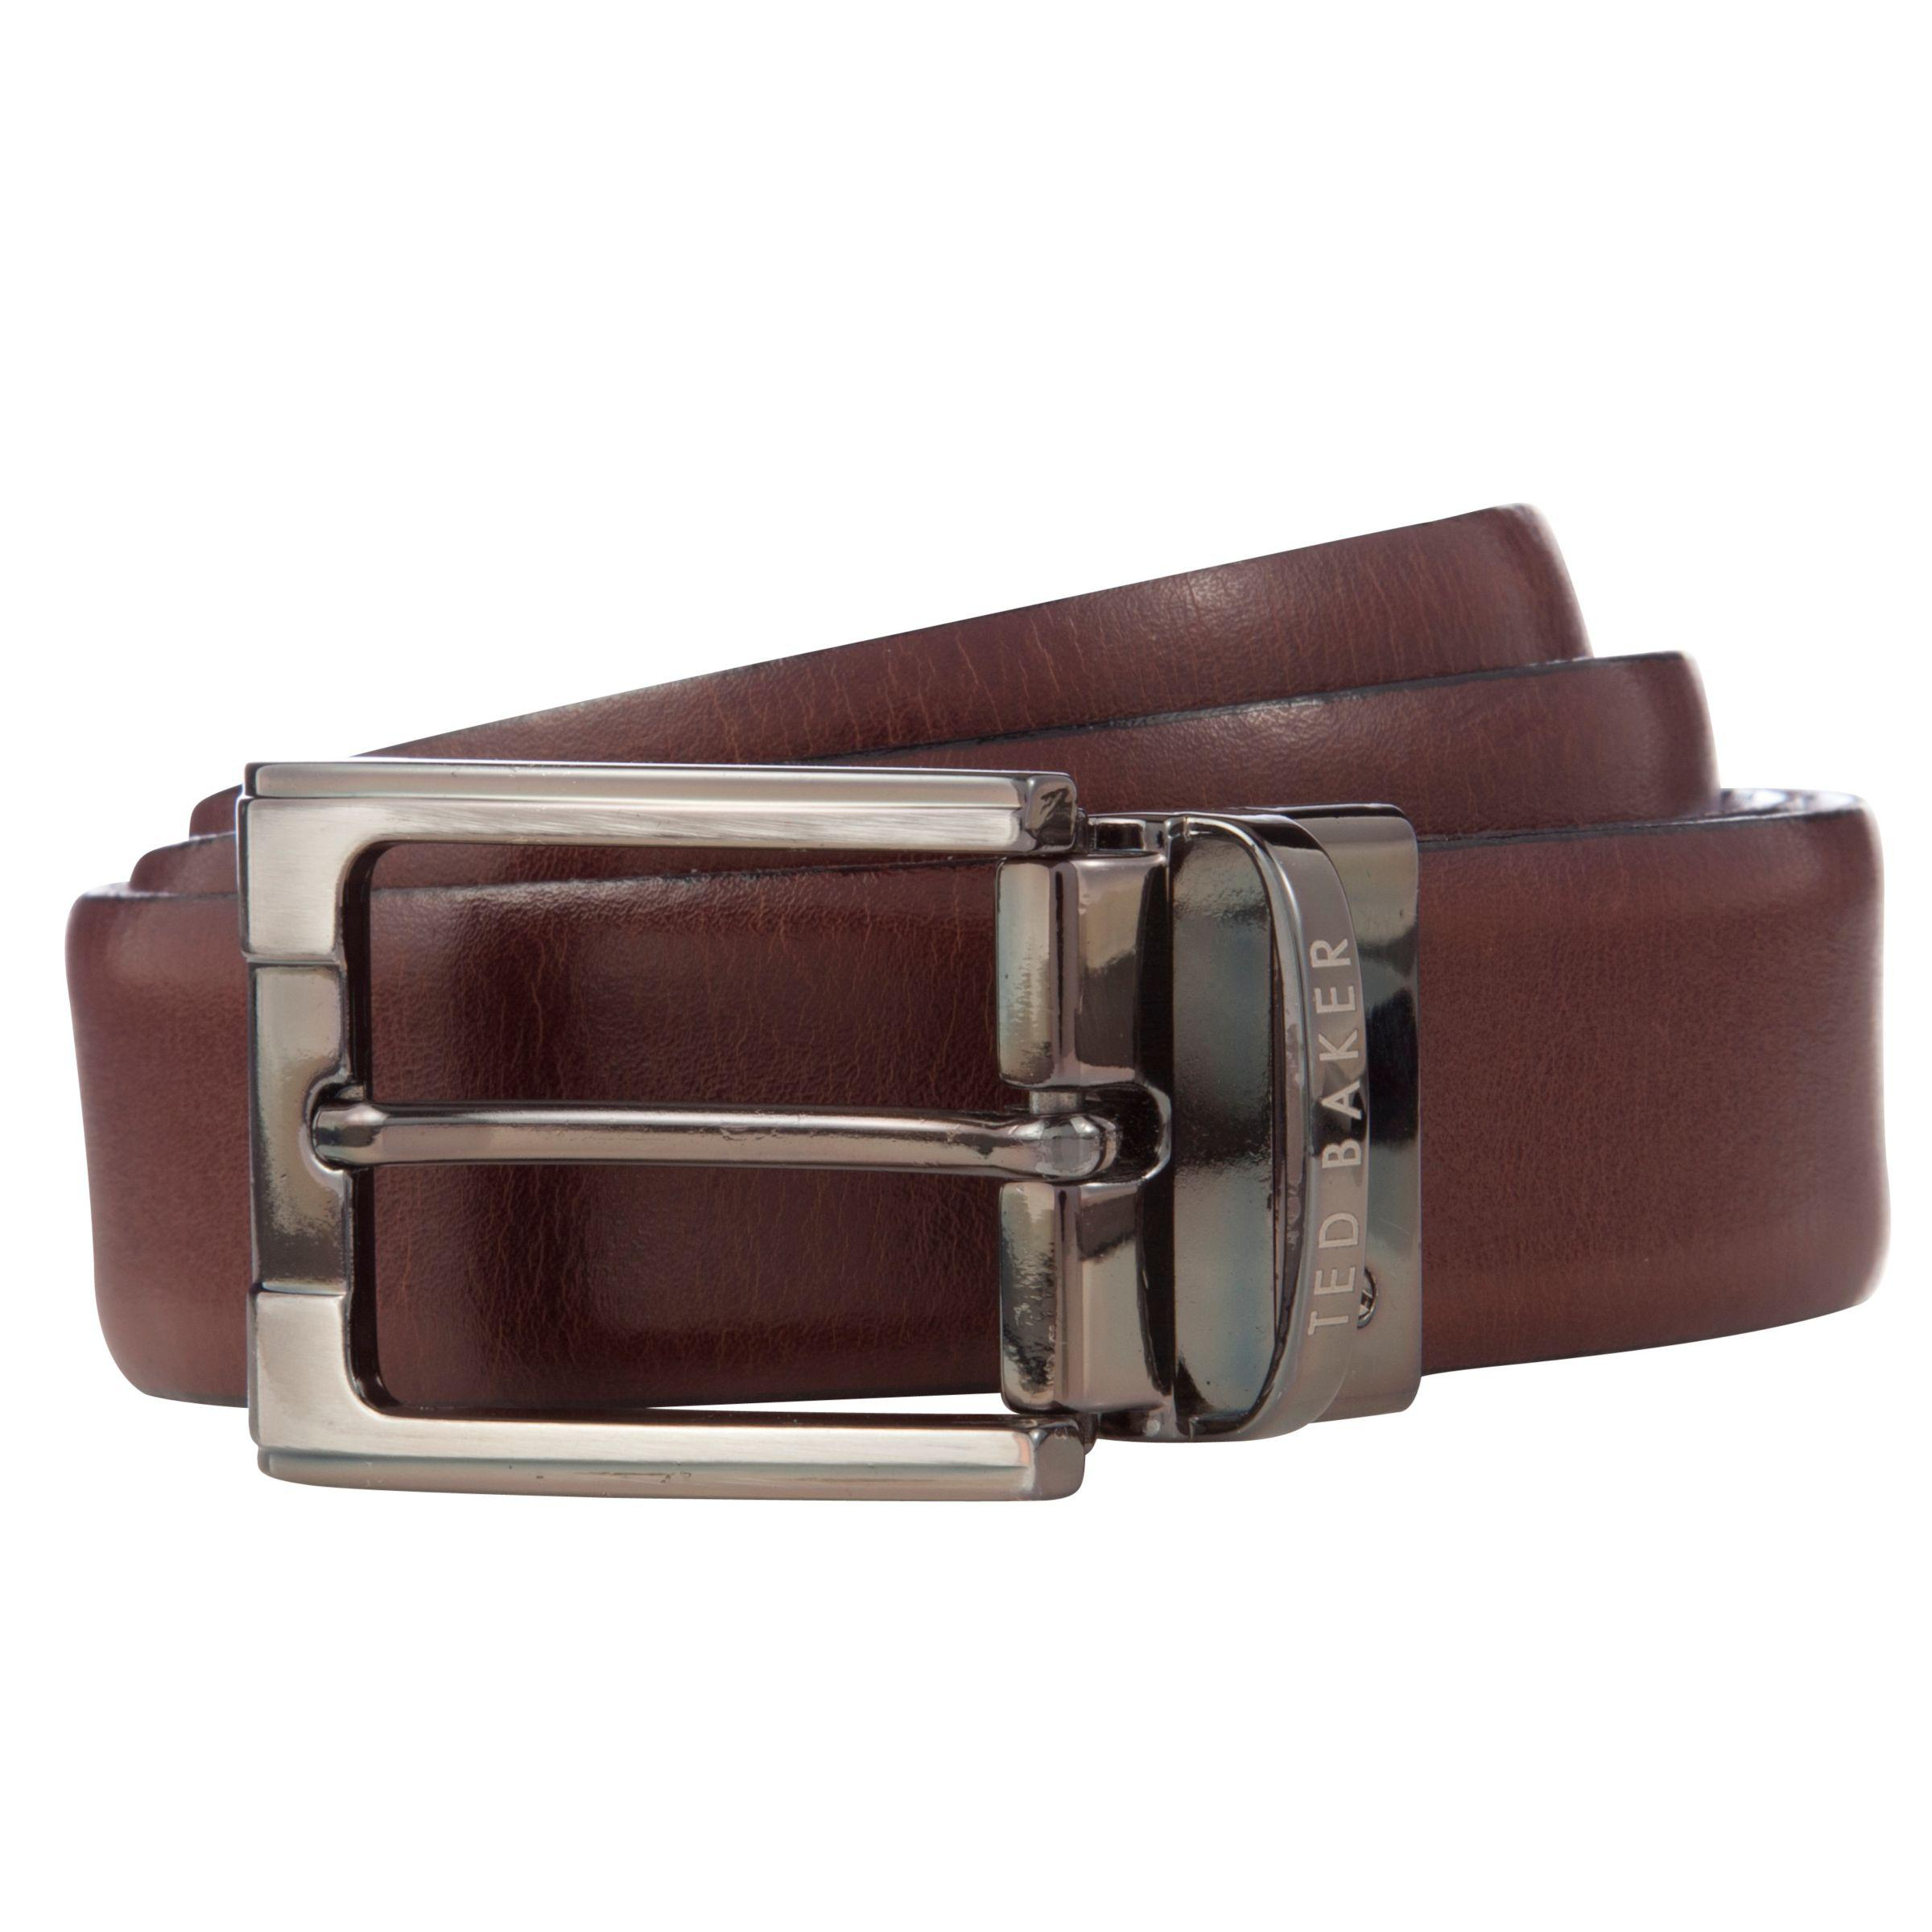 ee78aefc87d0a Ted Baker Crafti Smart Leather Reversible Belt in Brown for Men - Lyst